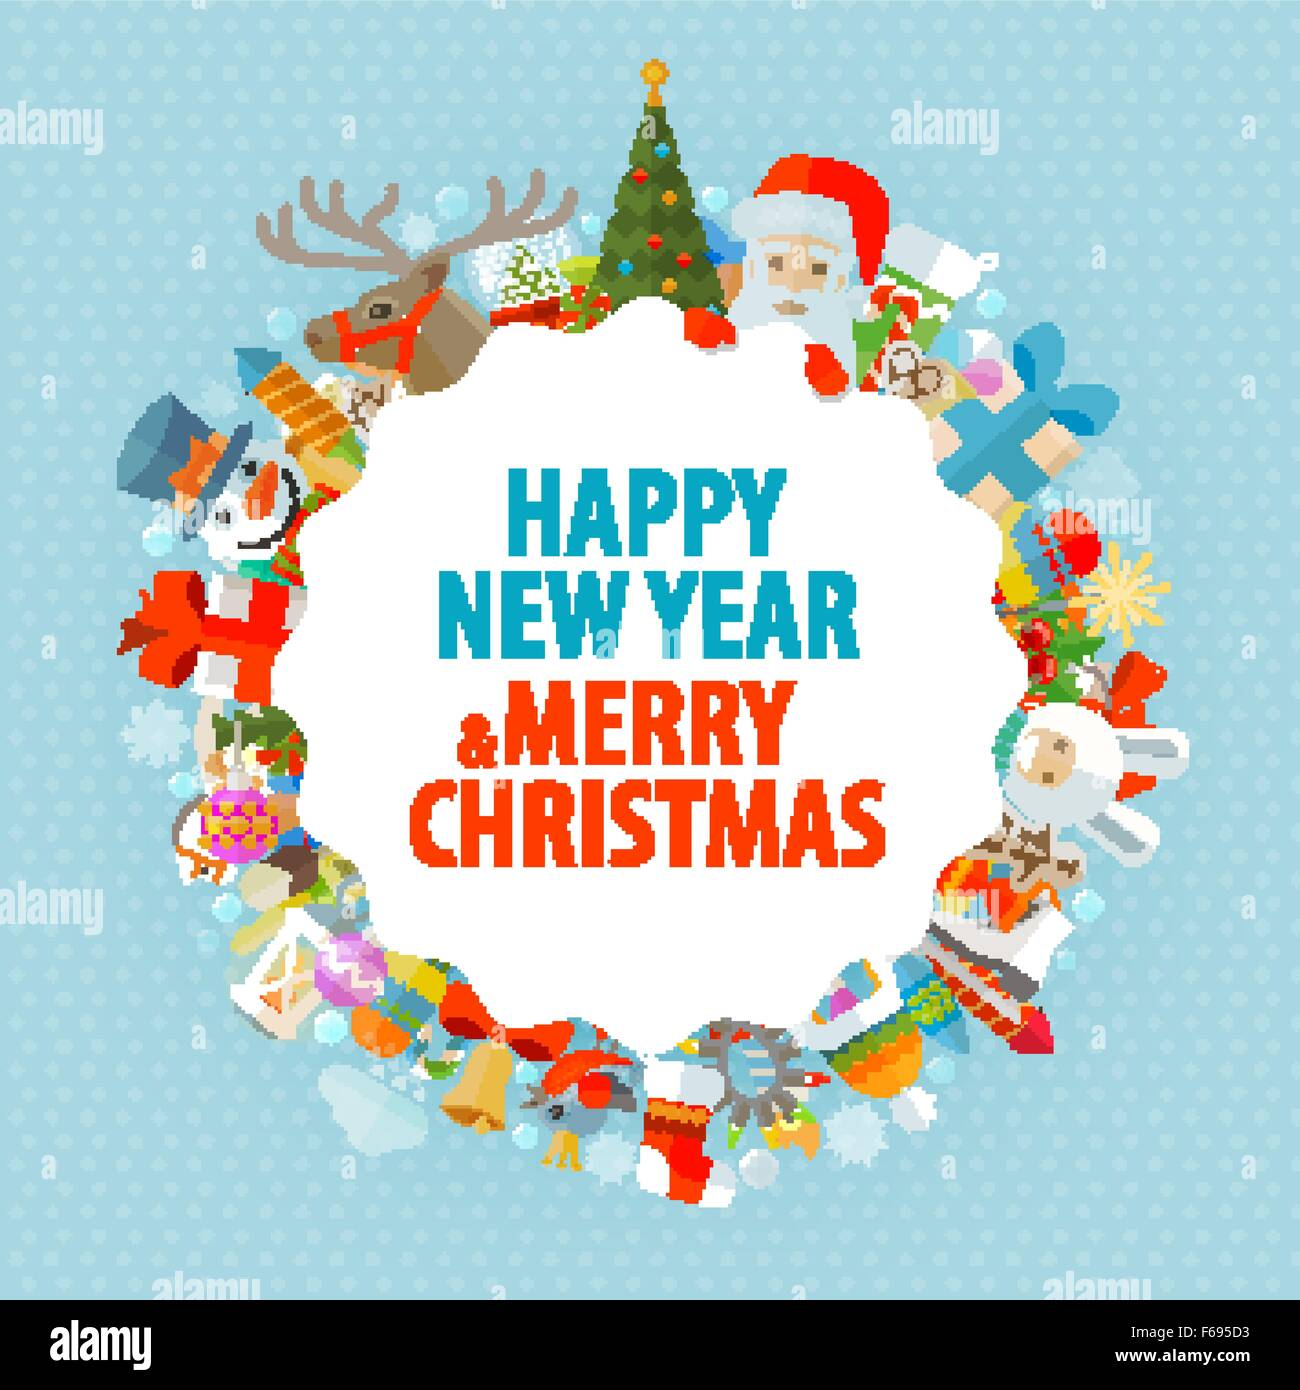 Happy new year and merry Christmas. Greeting card Stock Vector Art ...